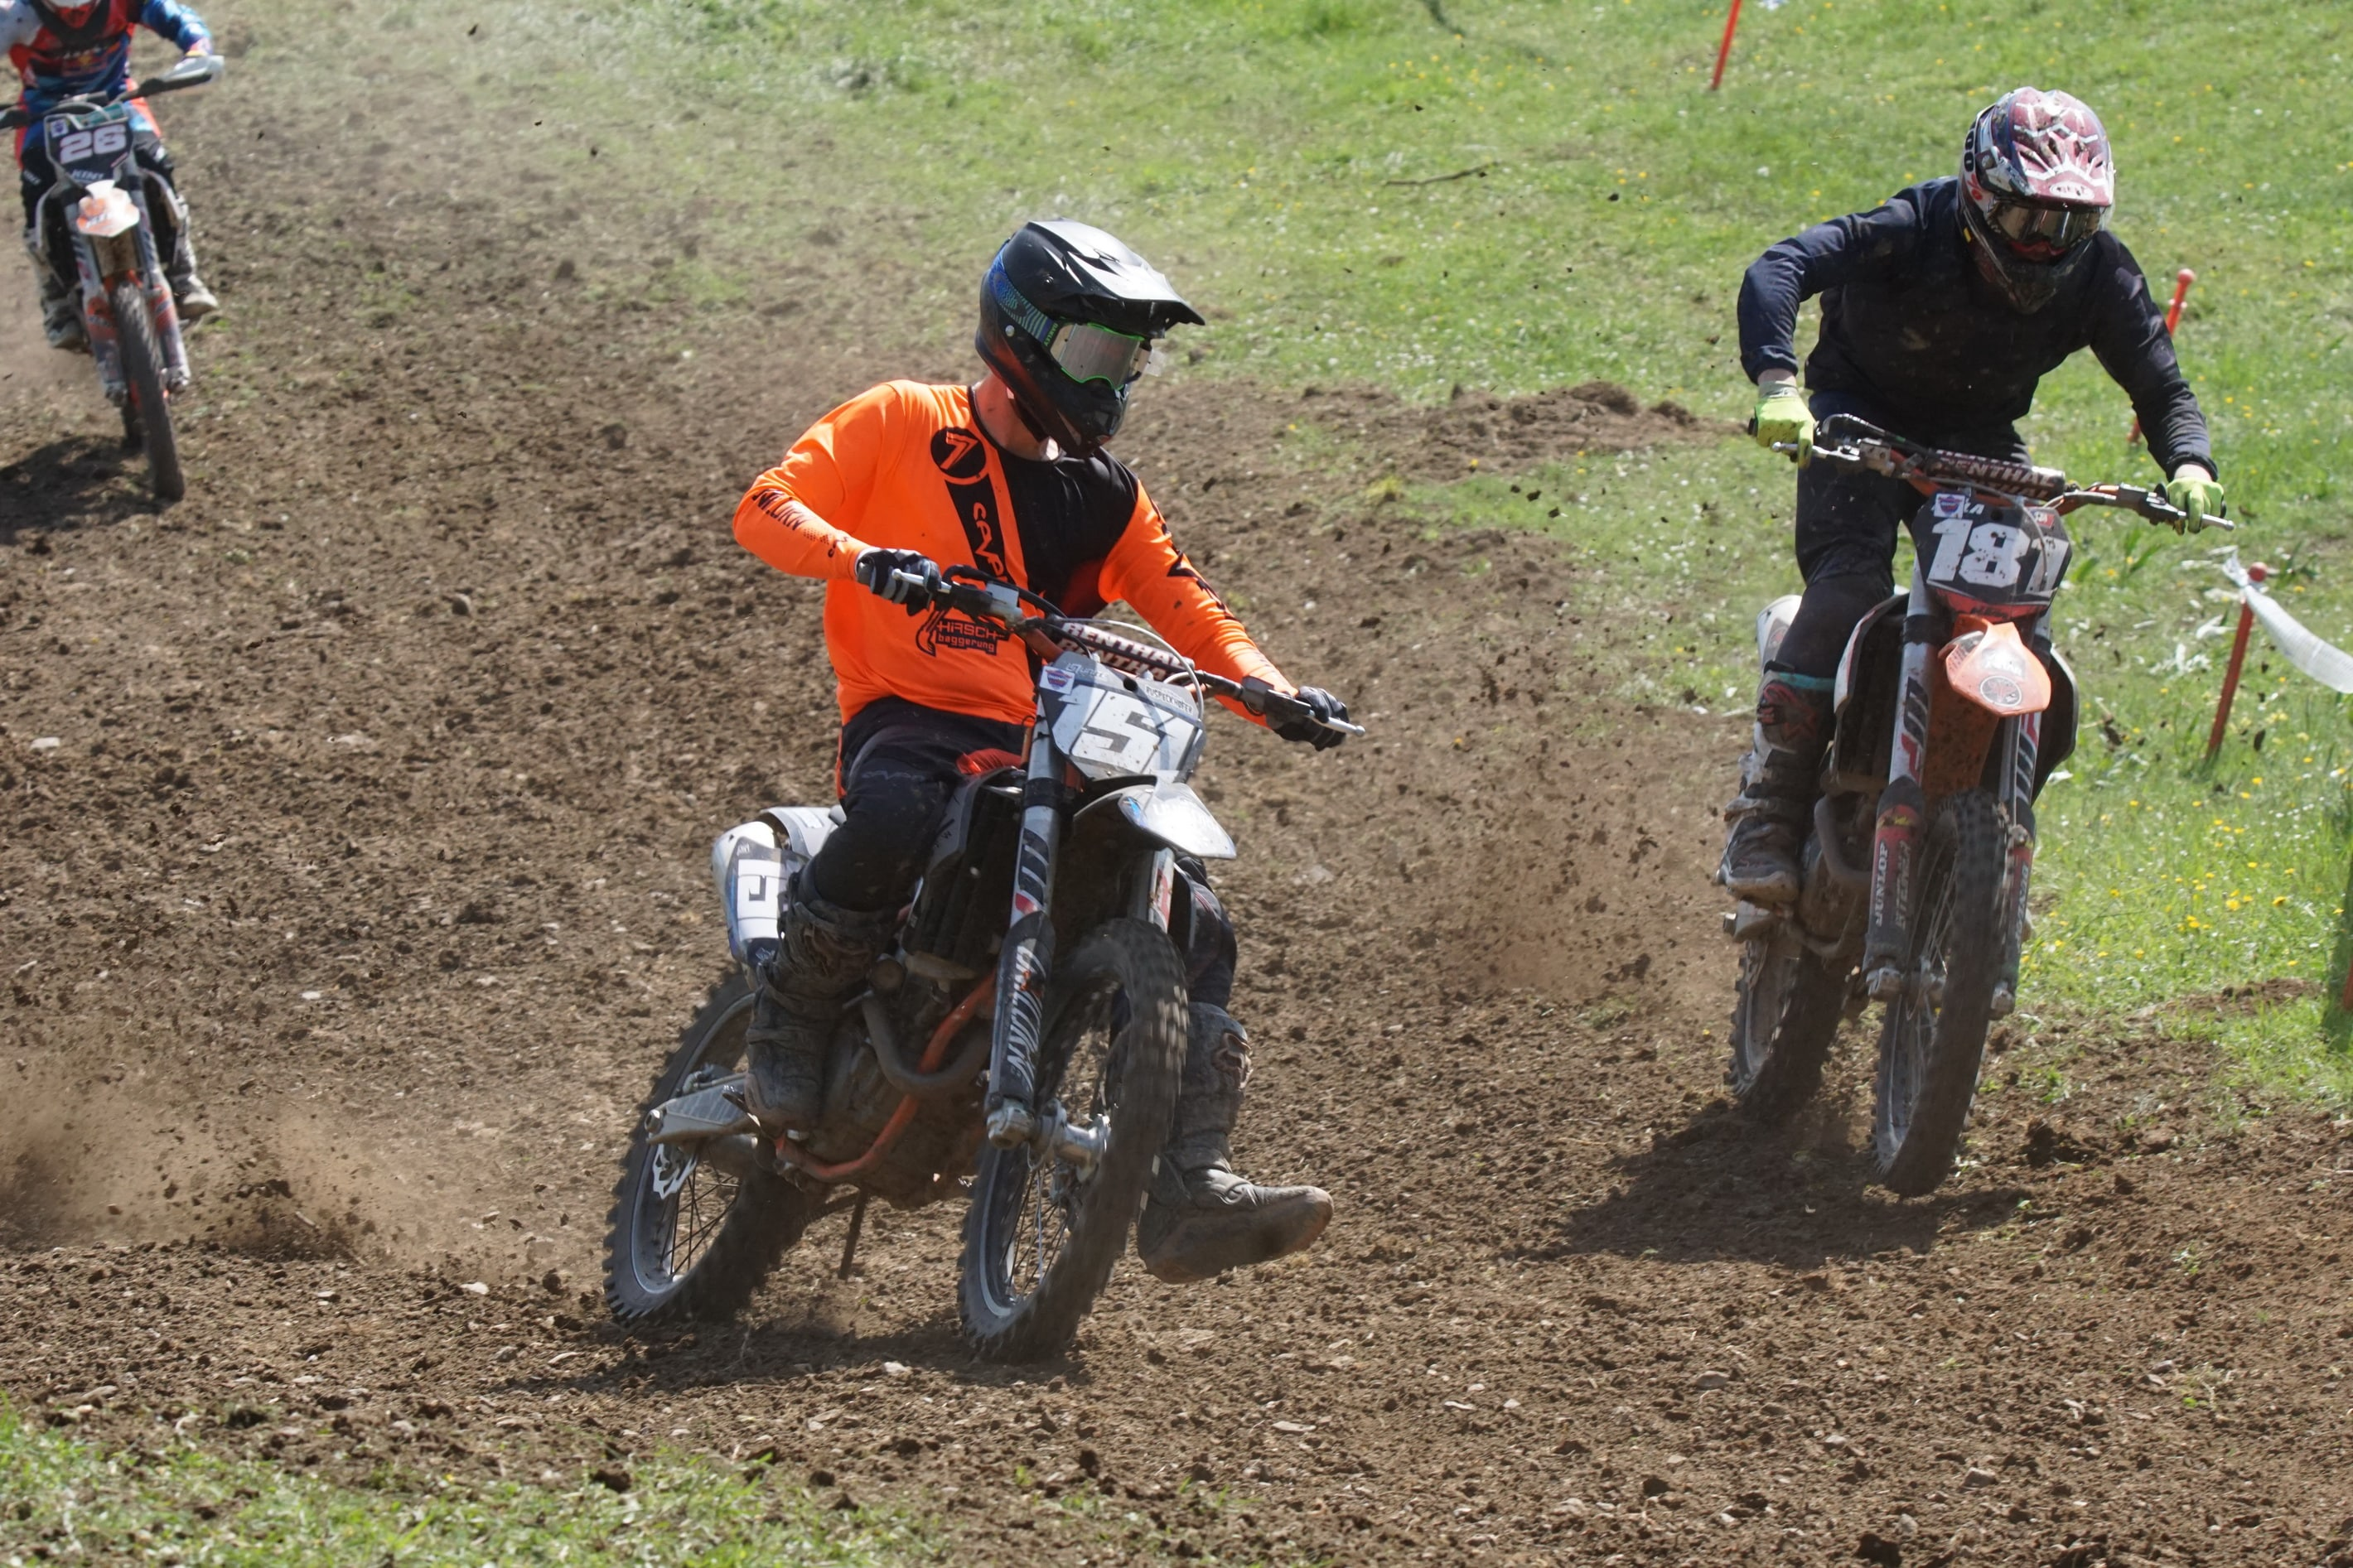 DSC 066_Moto Cross Sittendorf Teil1 am 29.04.2018